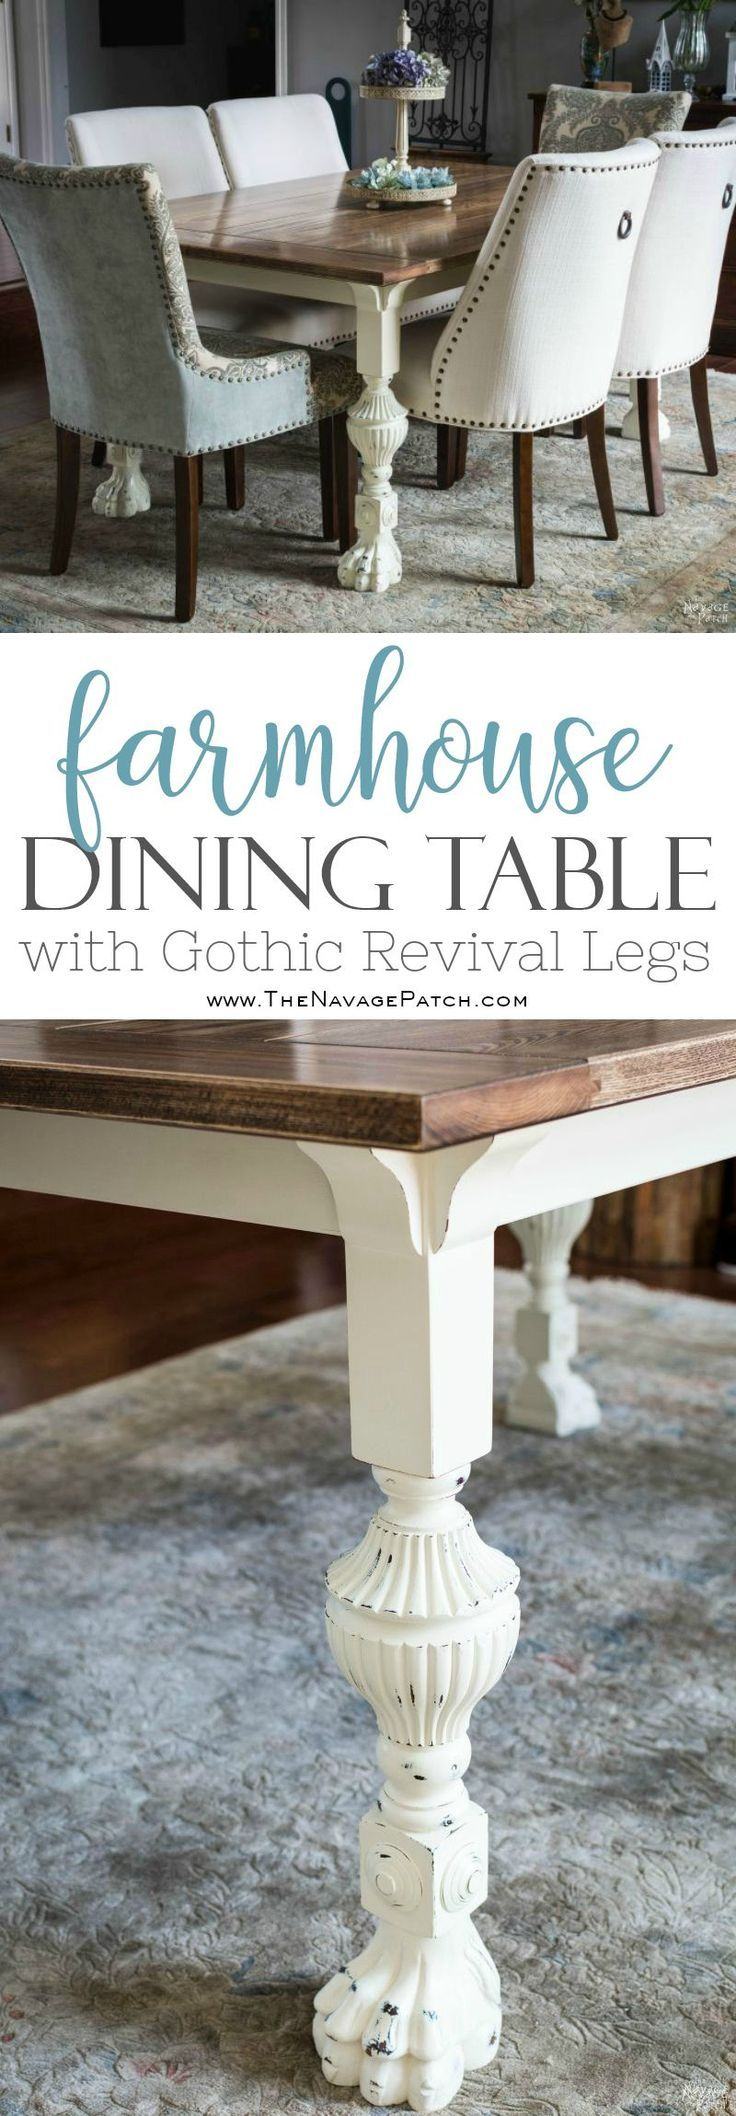 Farmhouse Dining Table with Gothic Revival Legs | DIY dining table tutorial | Ho...